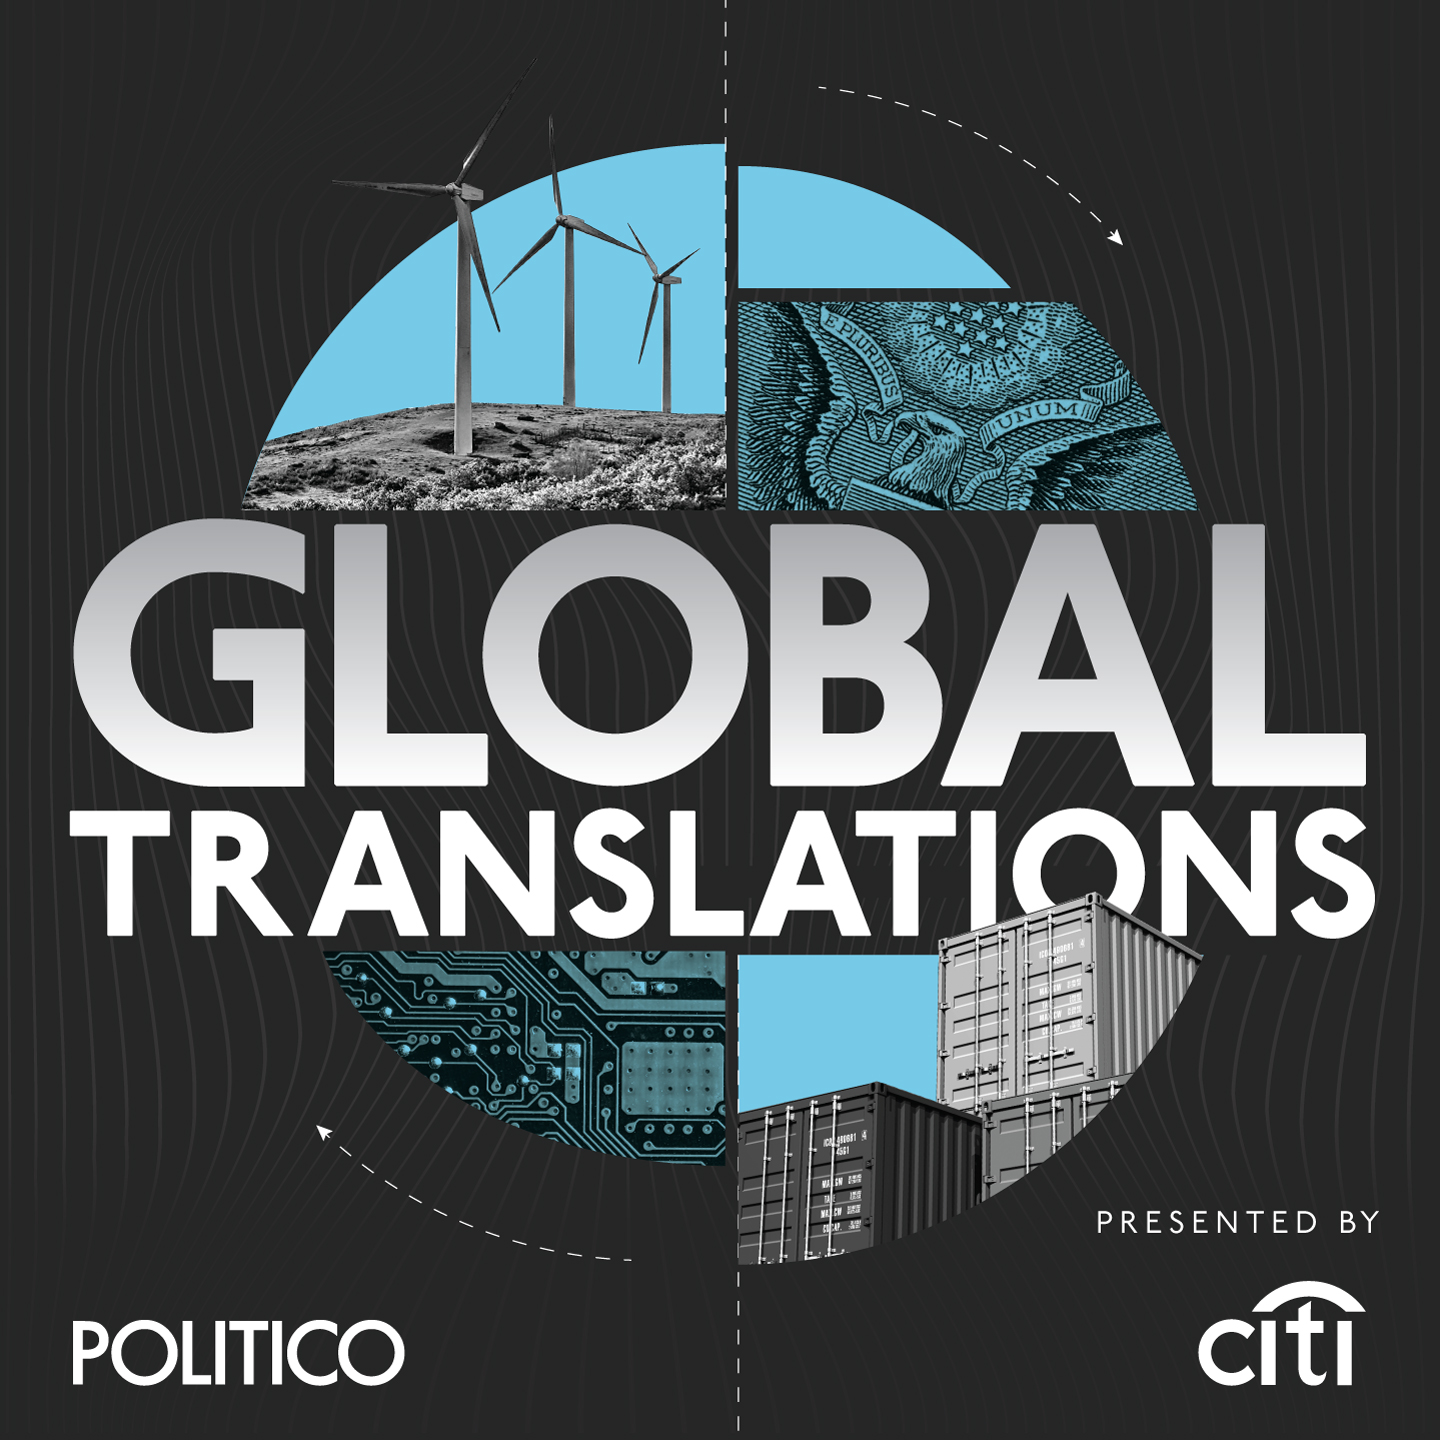 Global Translations